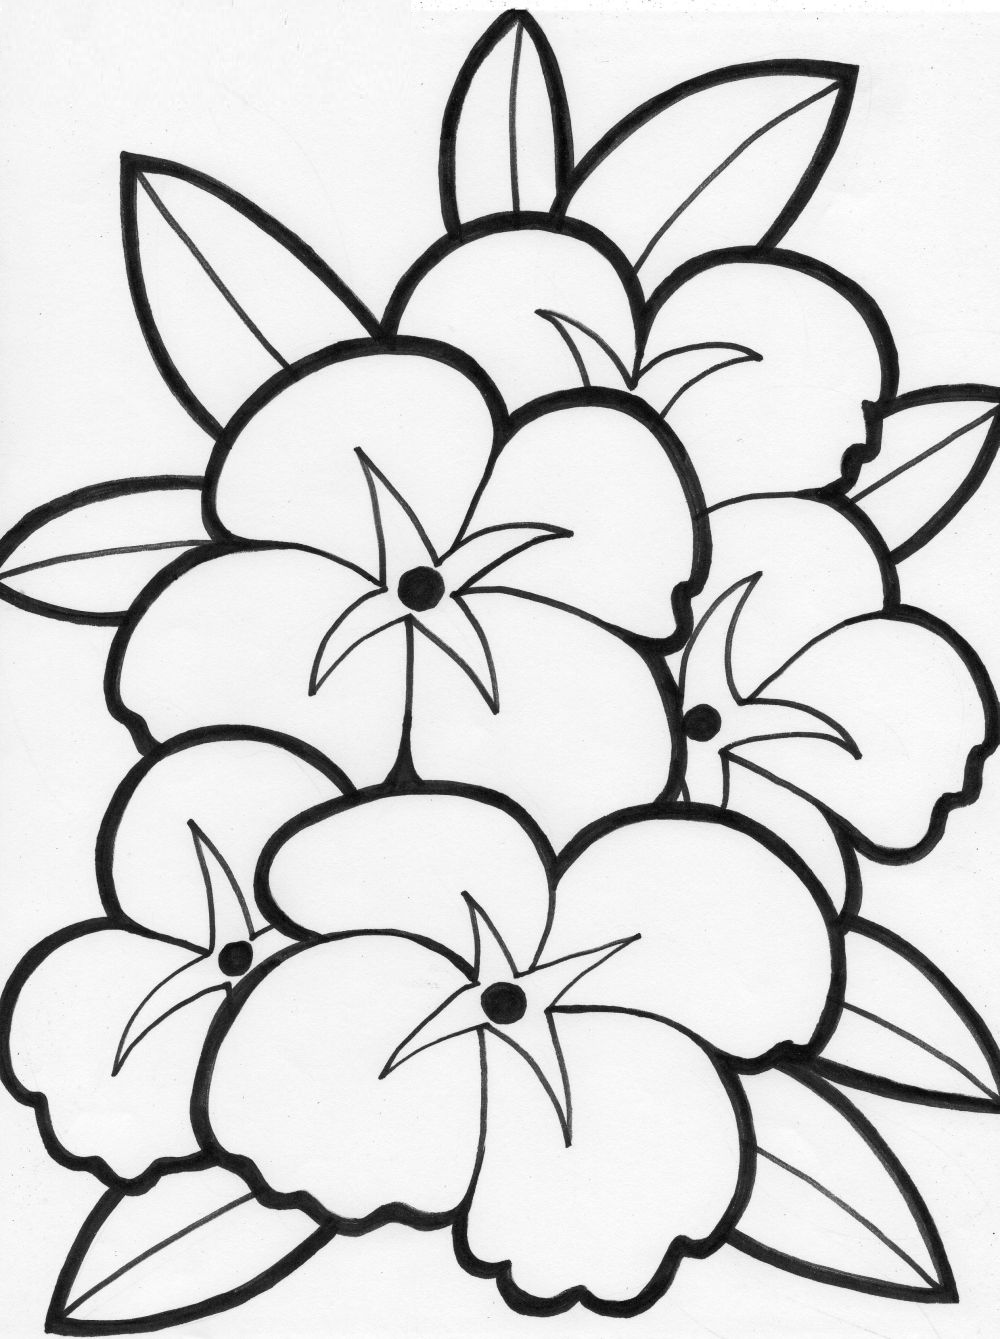 Flower Coloring Page Printable Flower Coloring Pages Flower Coloring Sheets Mandala Coloring Pages